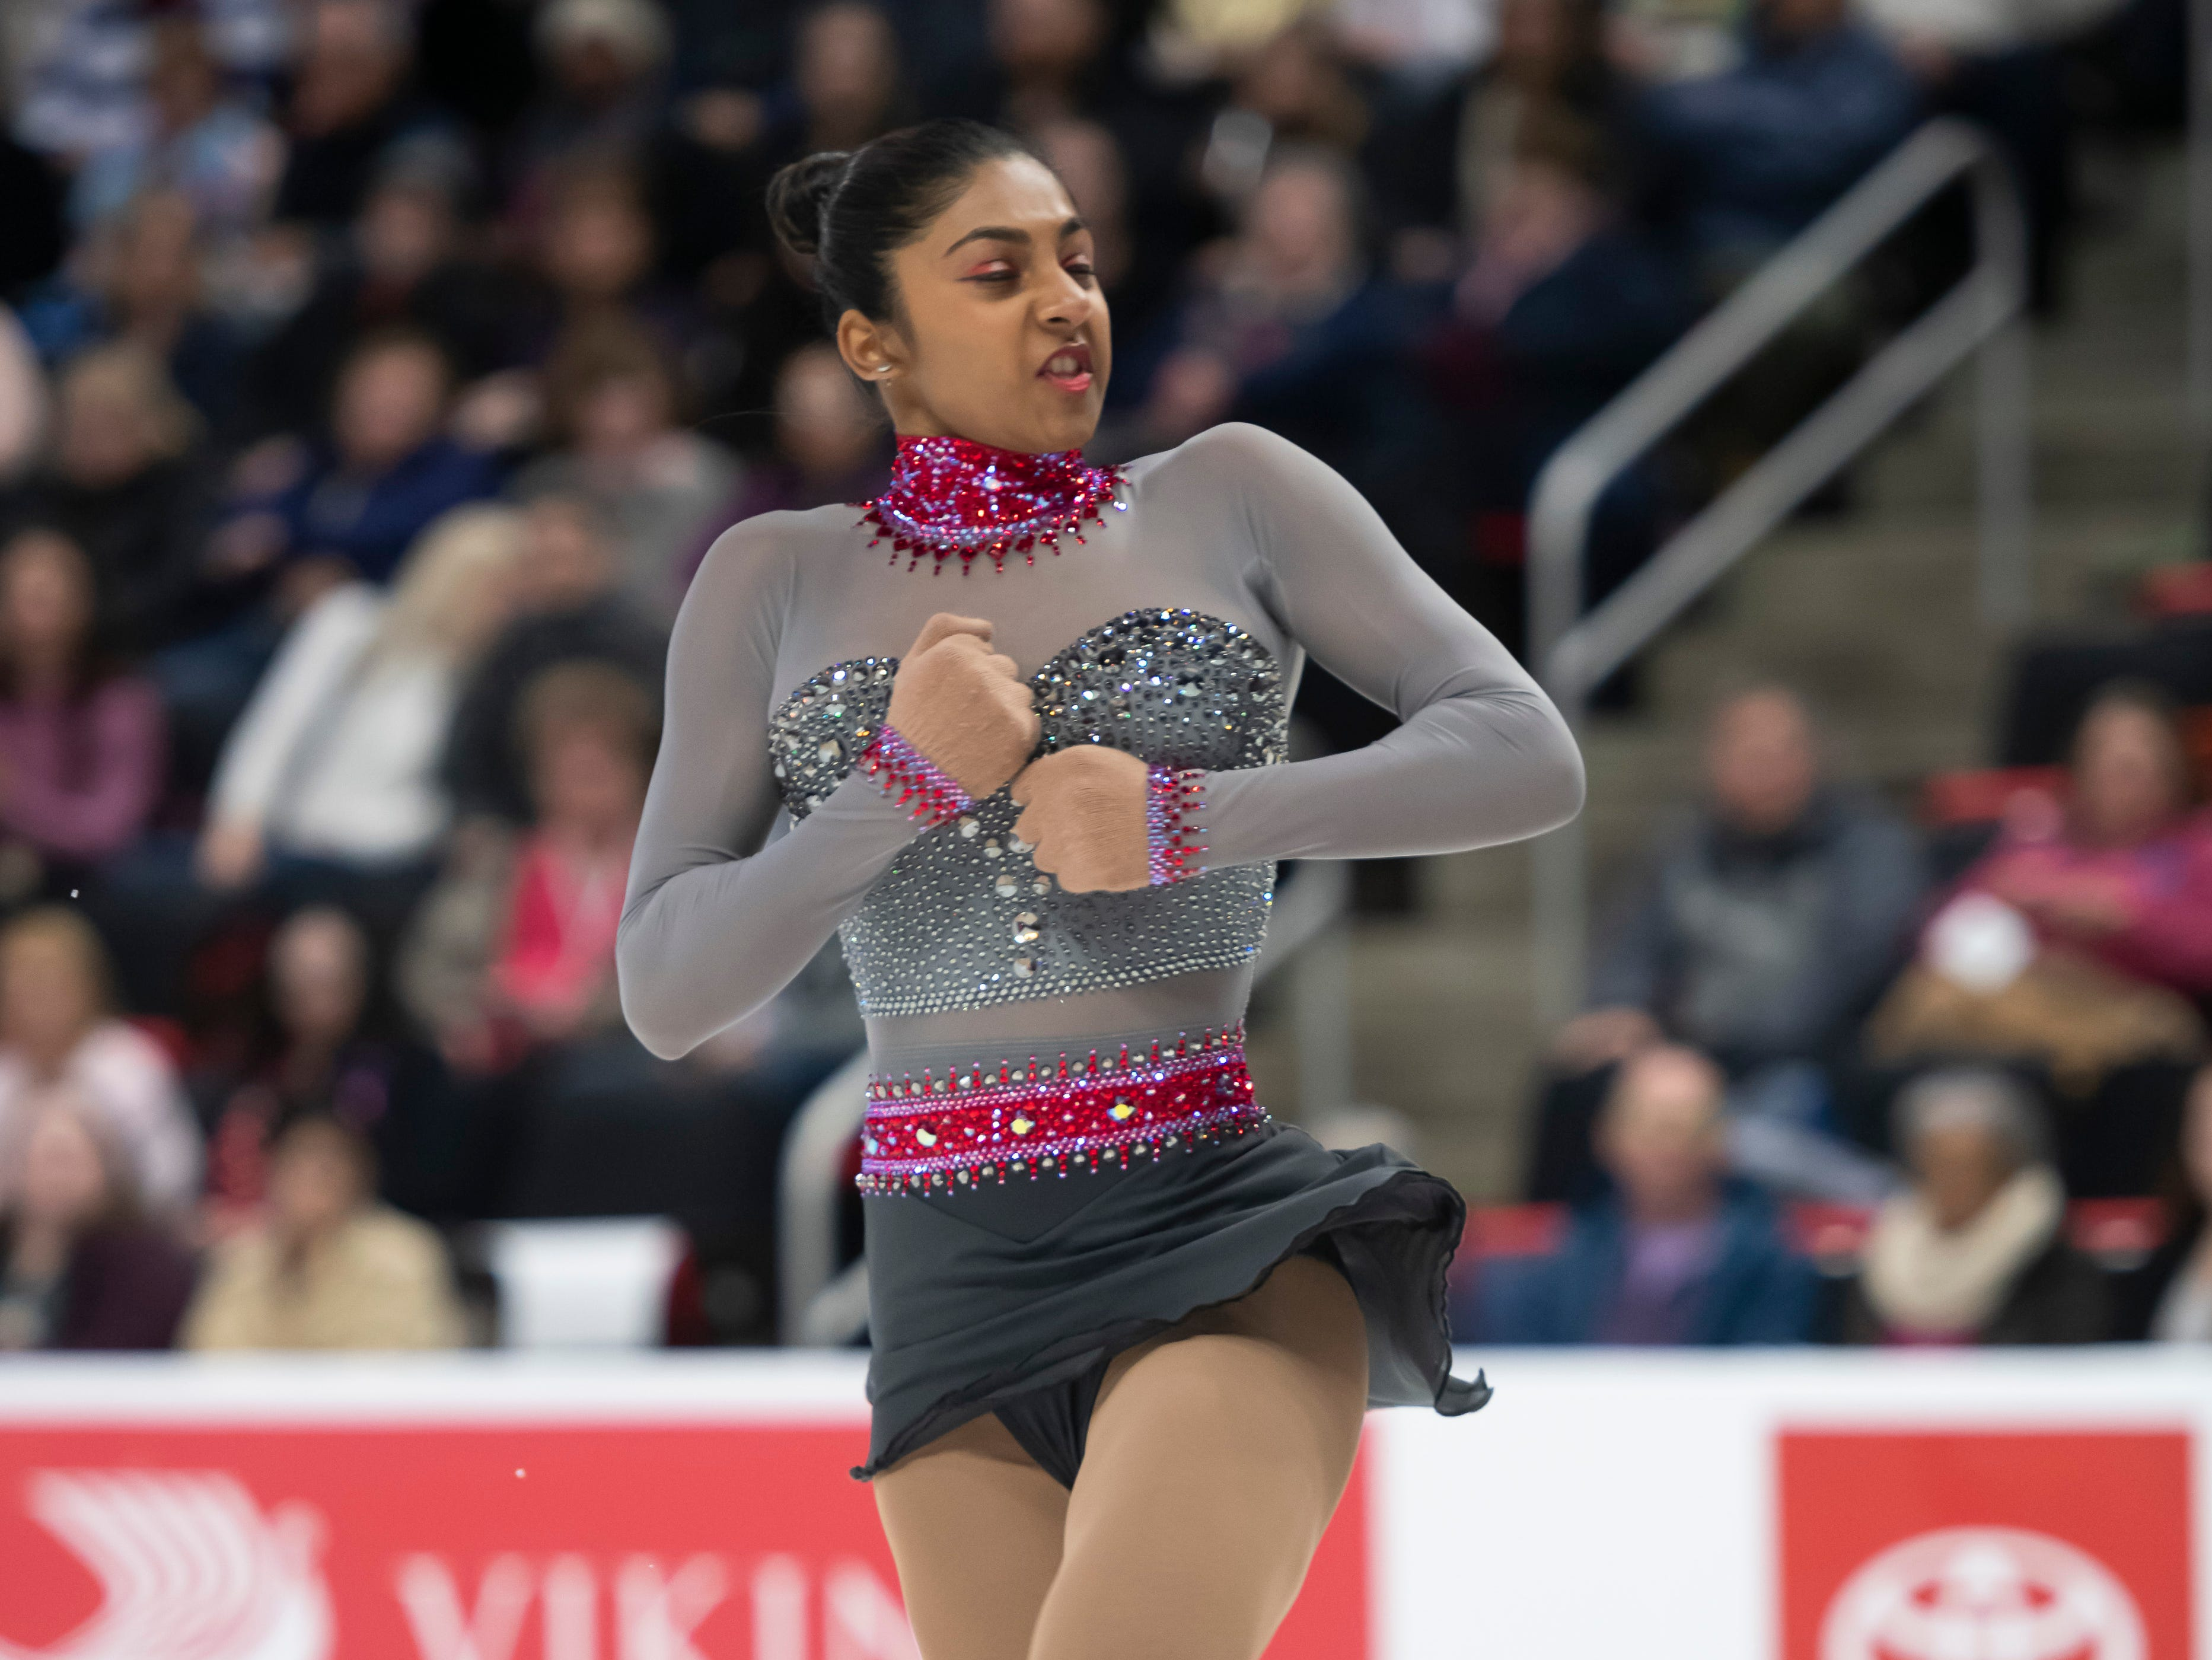 Pooja Lalyan competes in the ladies short program.